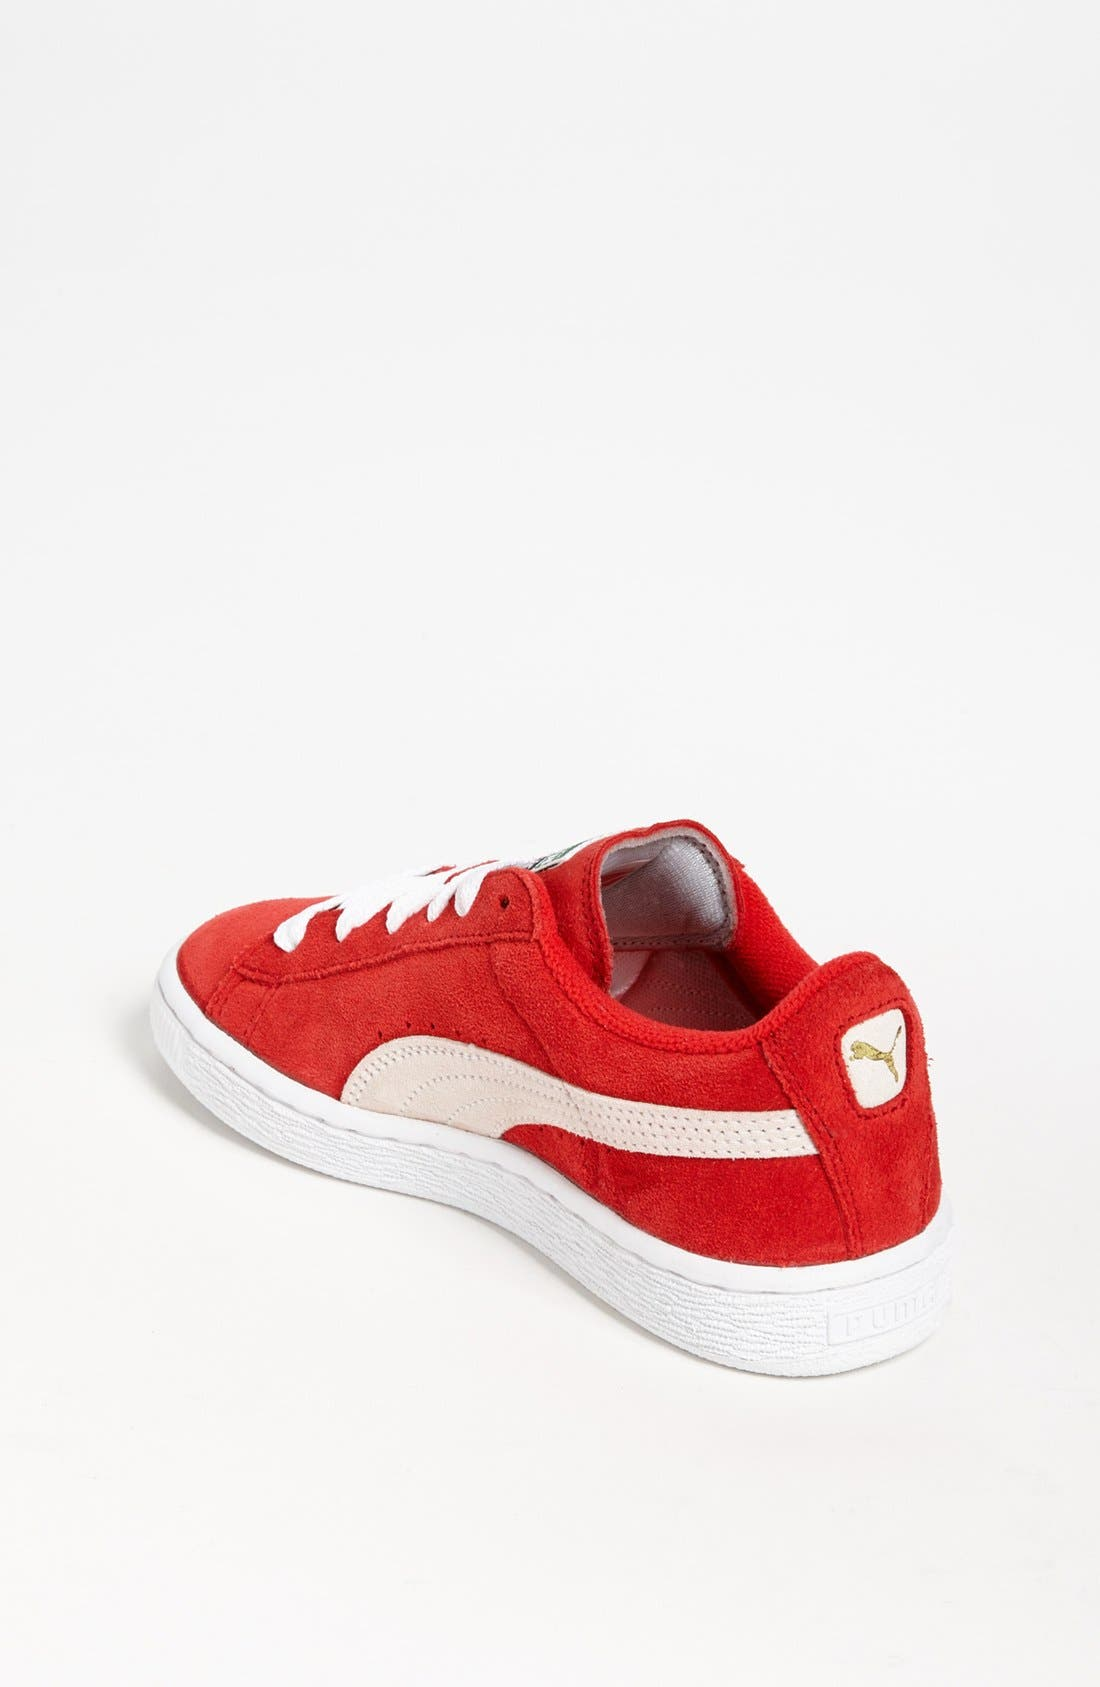 'Suede Jr.' Sneaker,                             Alternate thumbnail 36, color,